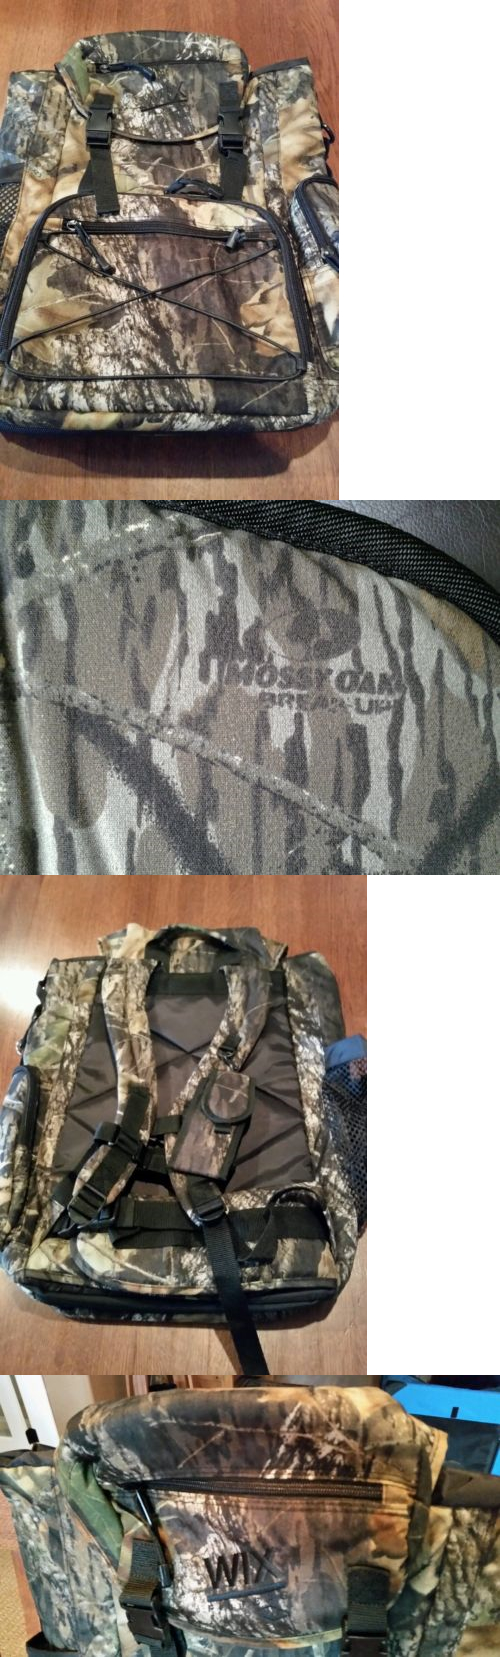 Day Packs 87122: Mossy Oak Camo Backpack Breakup Wix Filters Hunting Hiking Fishing Large New! BUY IT NOW ONLY: $40.0